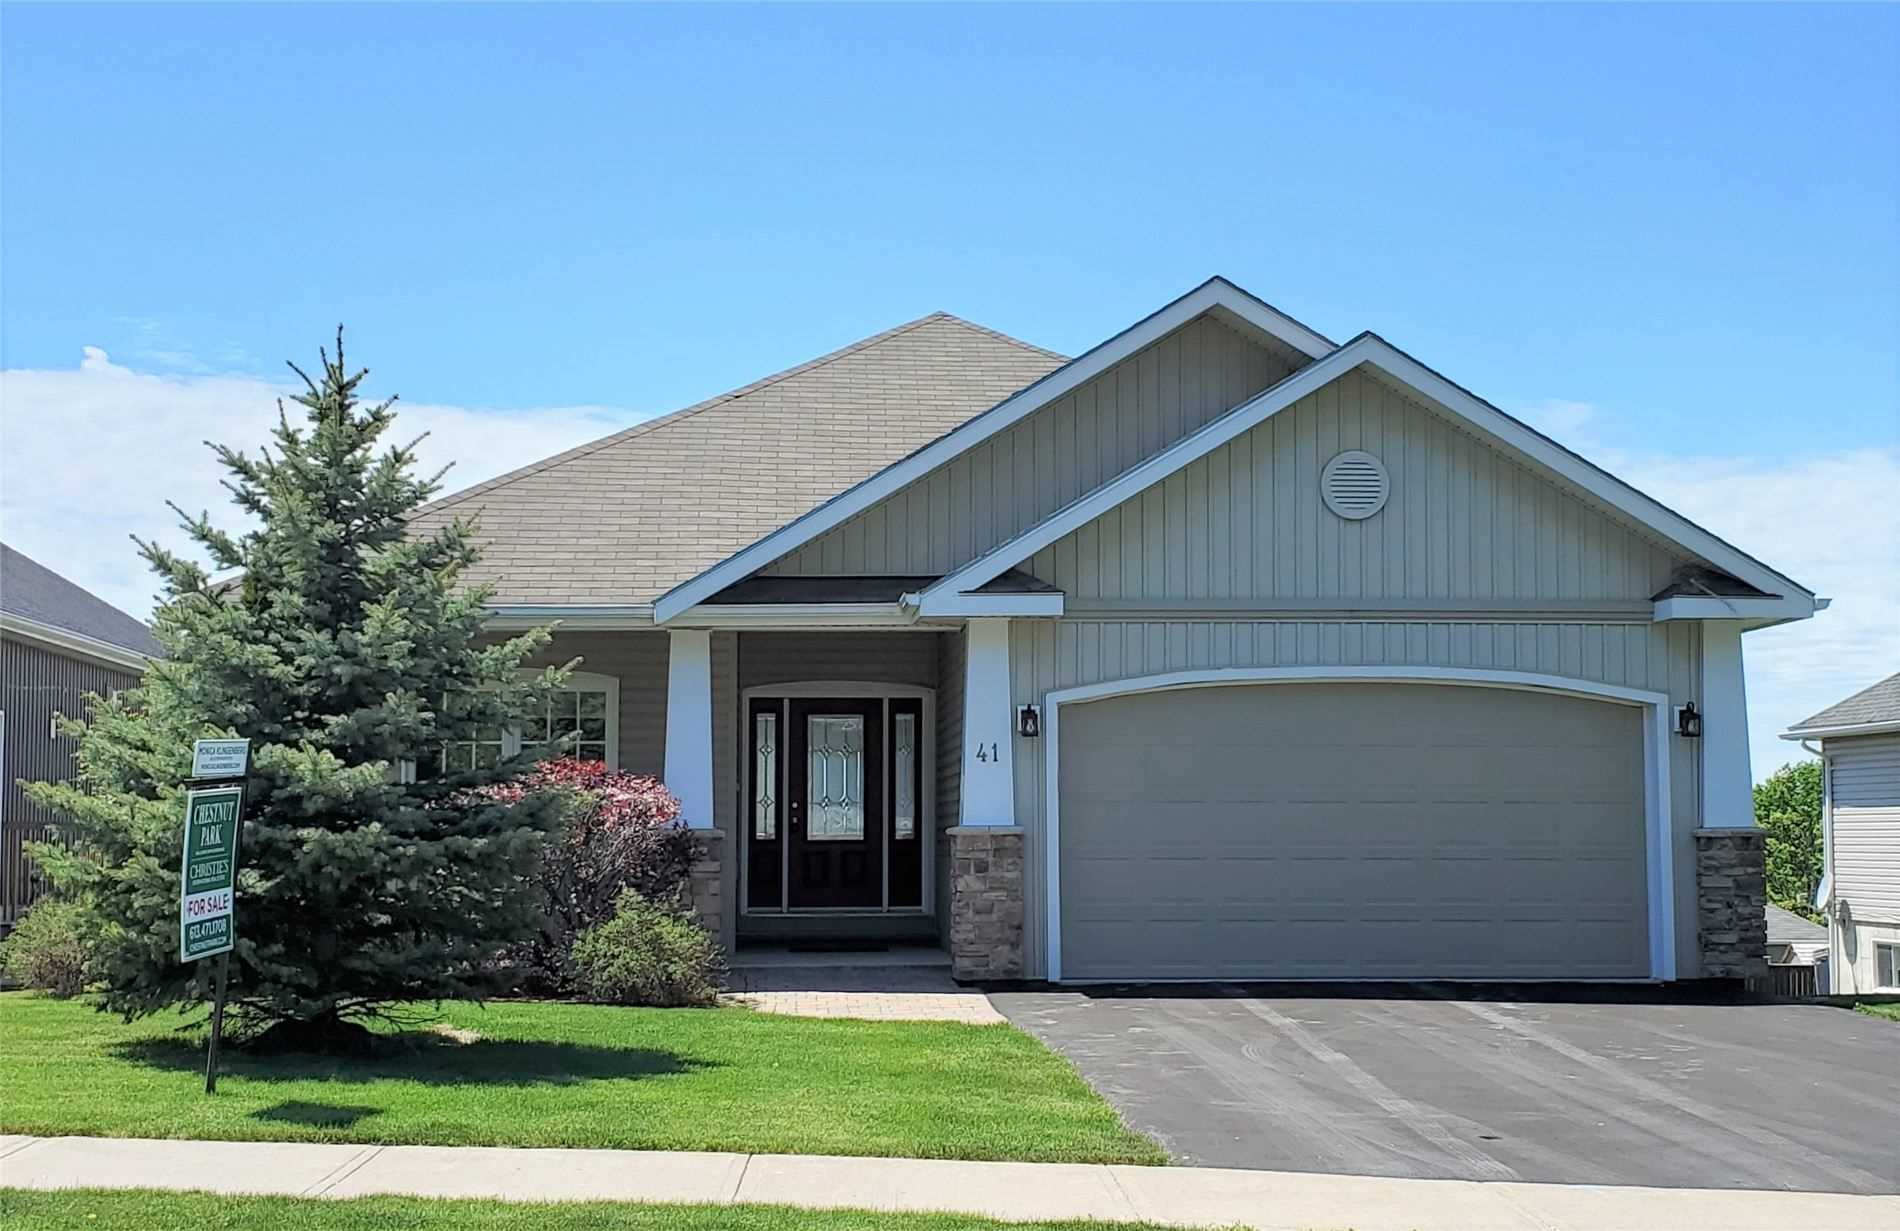 pictures of house for sale MLS: X4642614 located at 41 Owen St, Prince Edward County K0K2T0